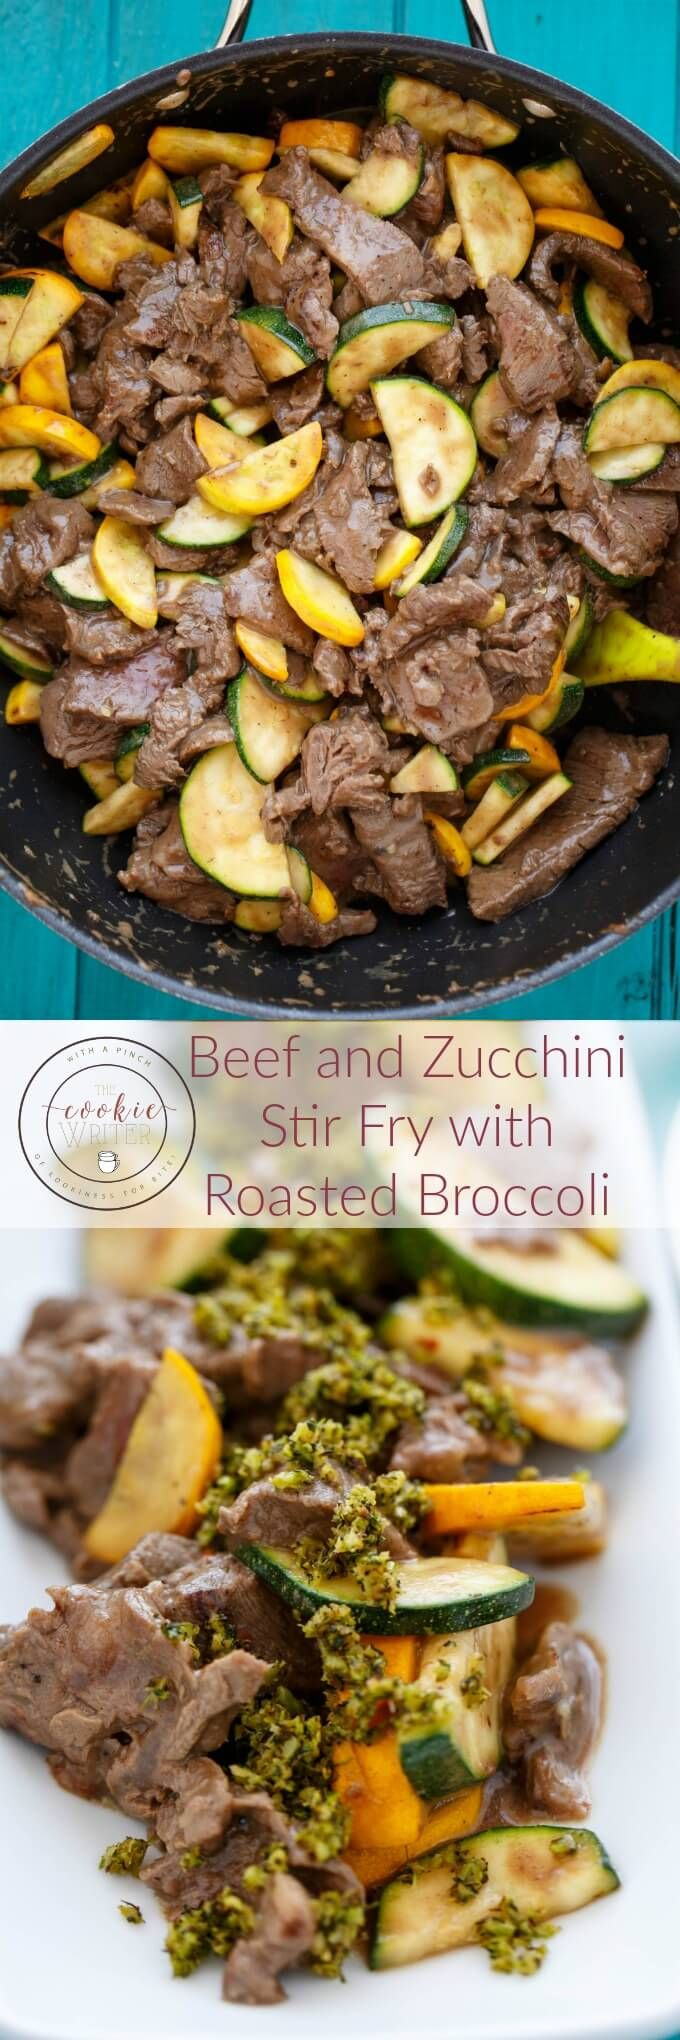 Beef and Zucchini Stir Fry with Roasted Broccoli | http://thecookiewriter.com | @thecookiewriter | #stirfry | This beef and zucchini stir fry is the perfect way to use up garden veggies and the roasted broccoli garnish is totally optional!